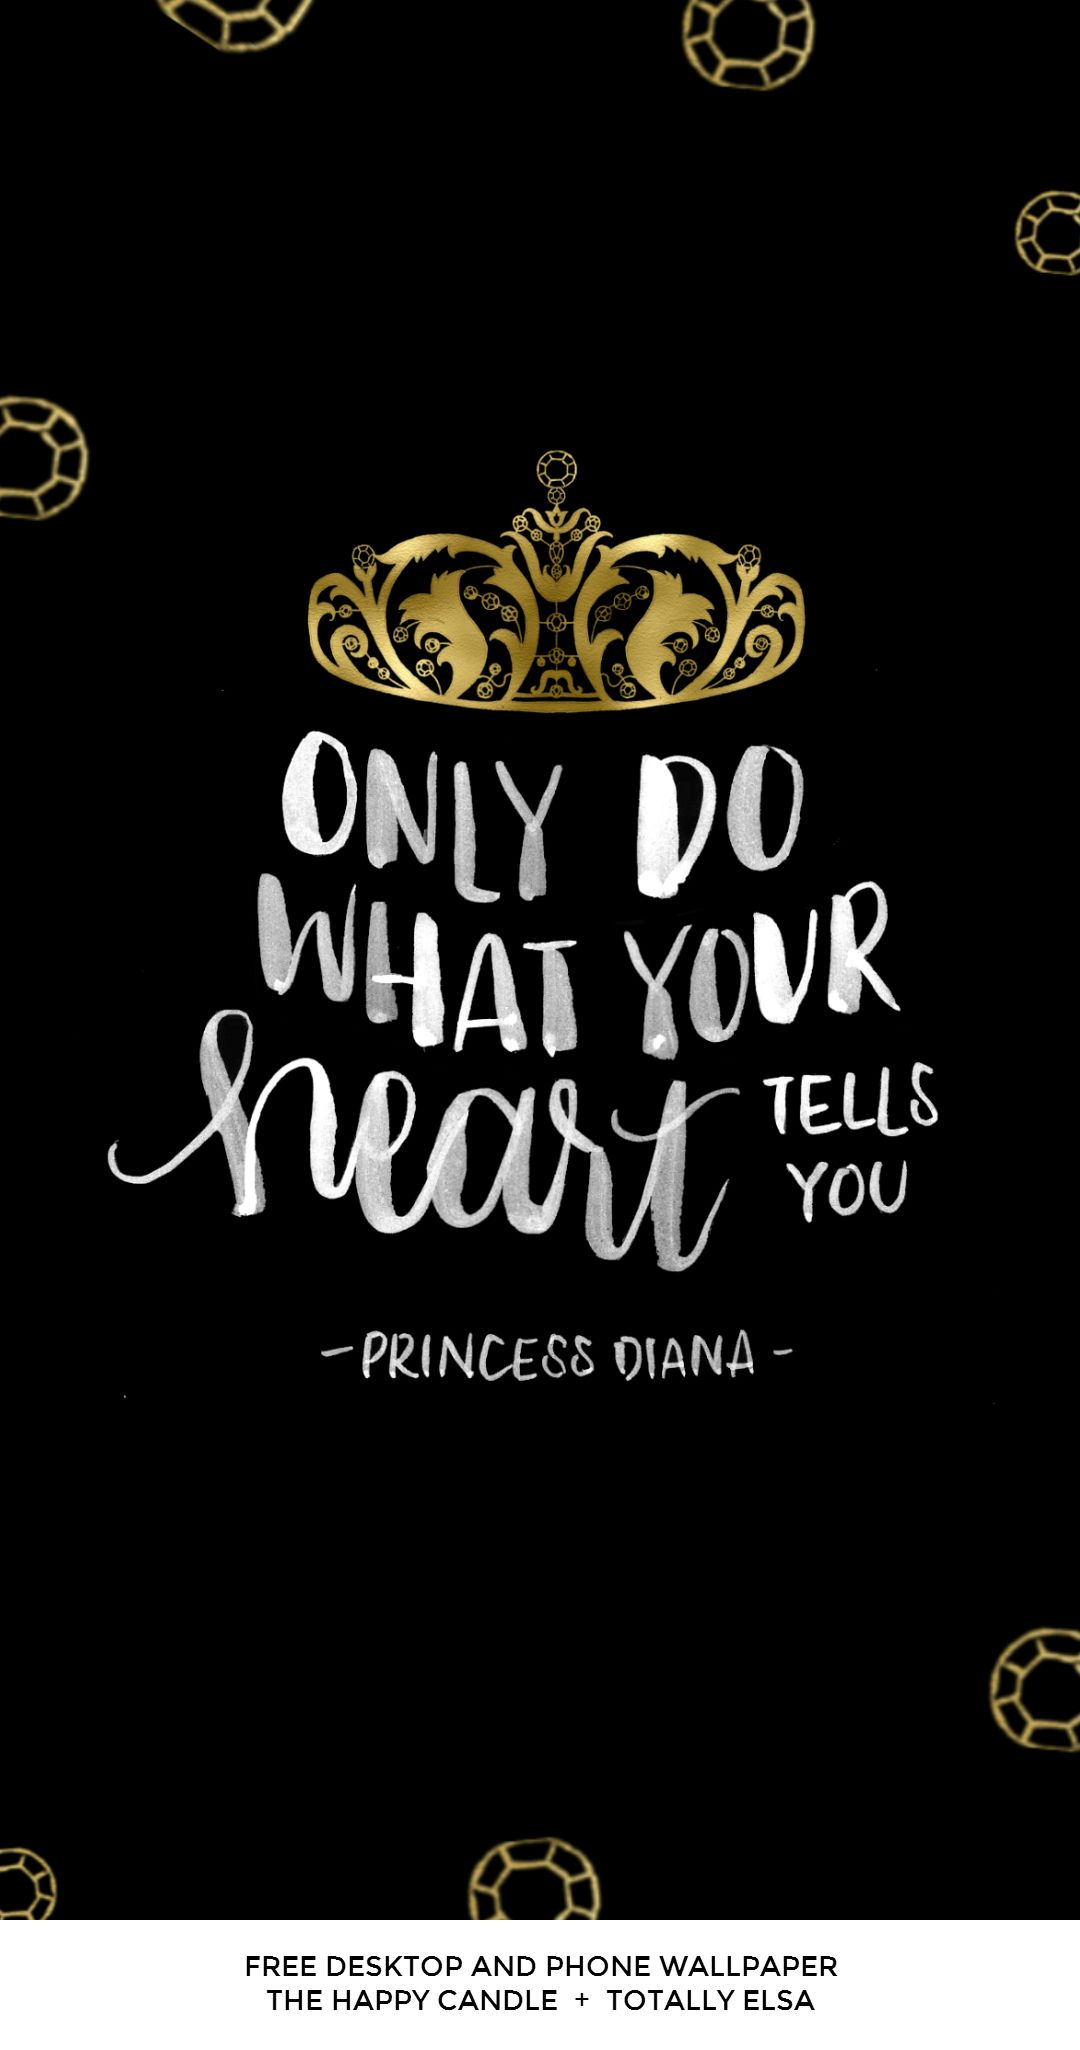 Only do what your heart tells you bg pinterest princess